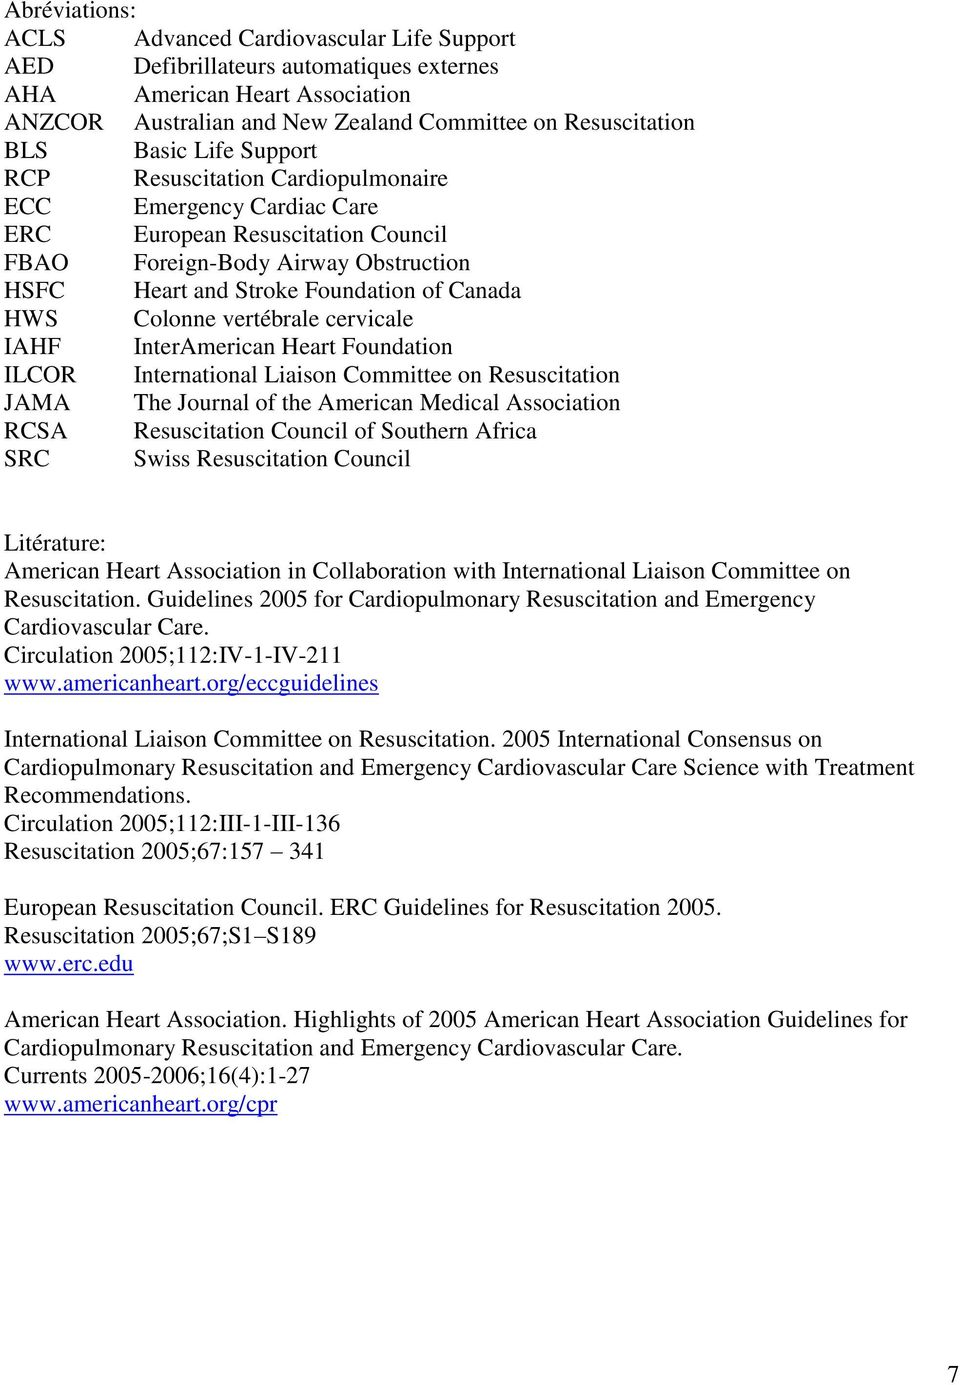 Colonne vertébrale cervicale IAHF InterAmerican Heart Foundation ILCOR International Liaison Committee on Resuscitation JAMA The Journal of the American Medical Association RCSA Resuscitation Council